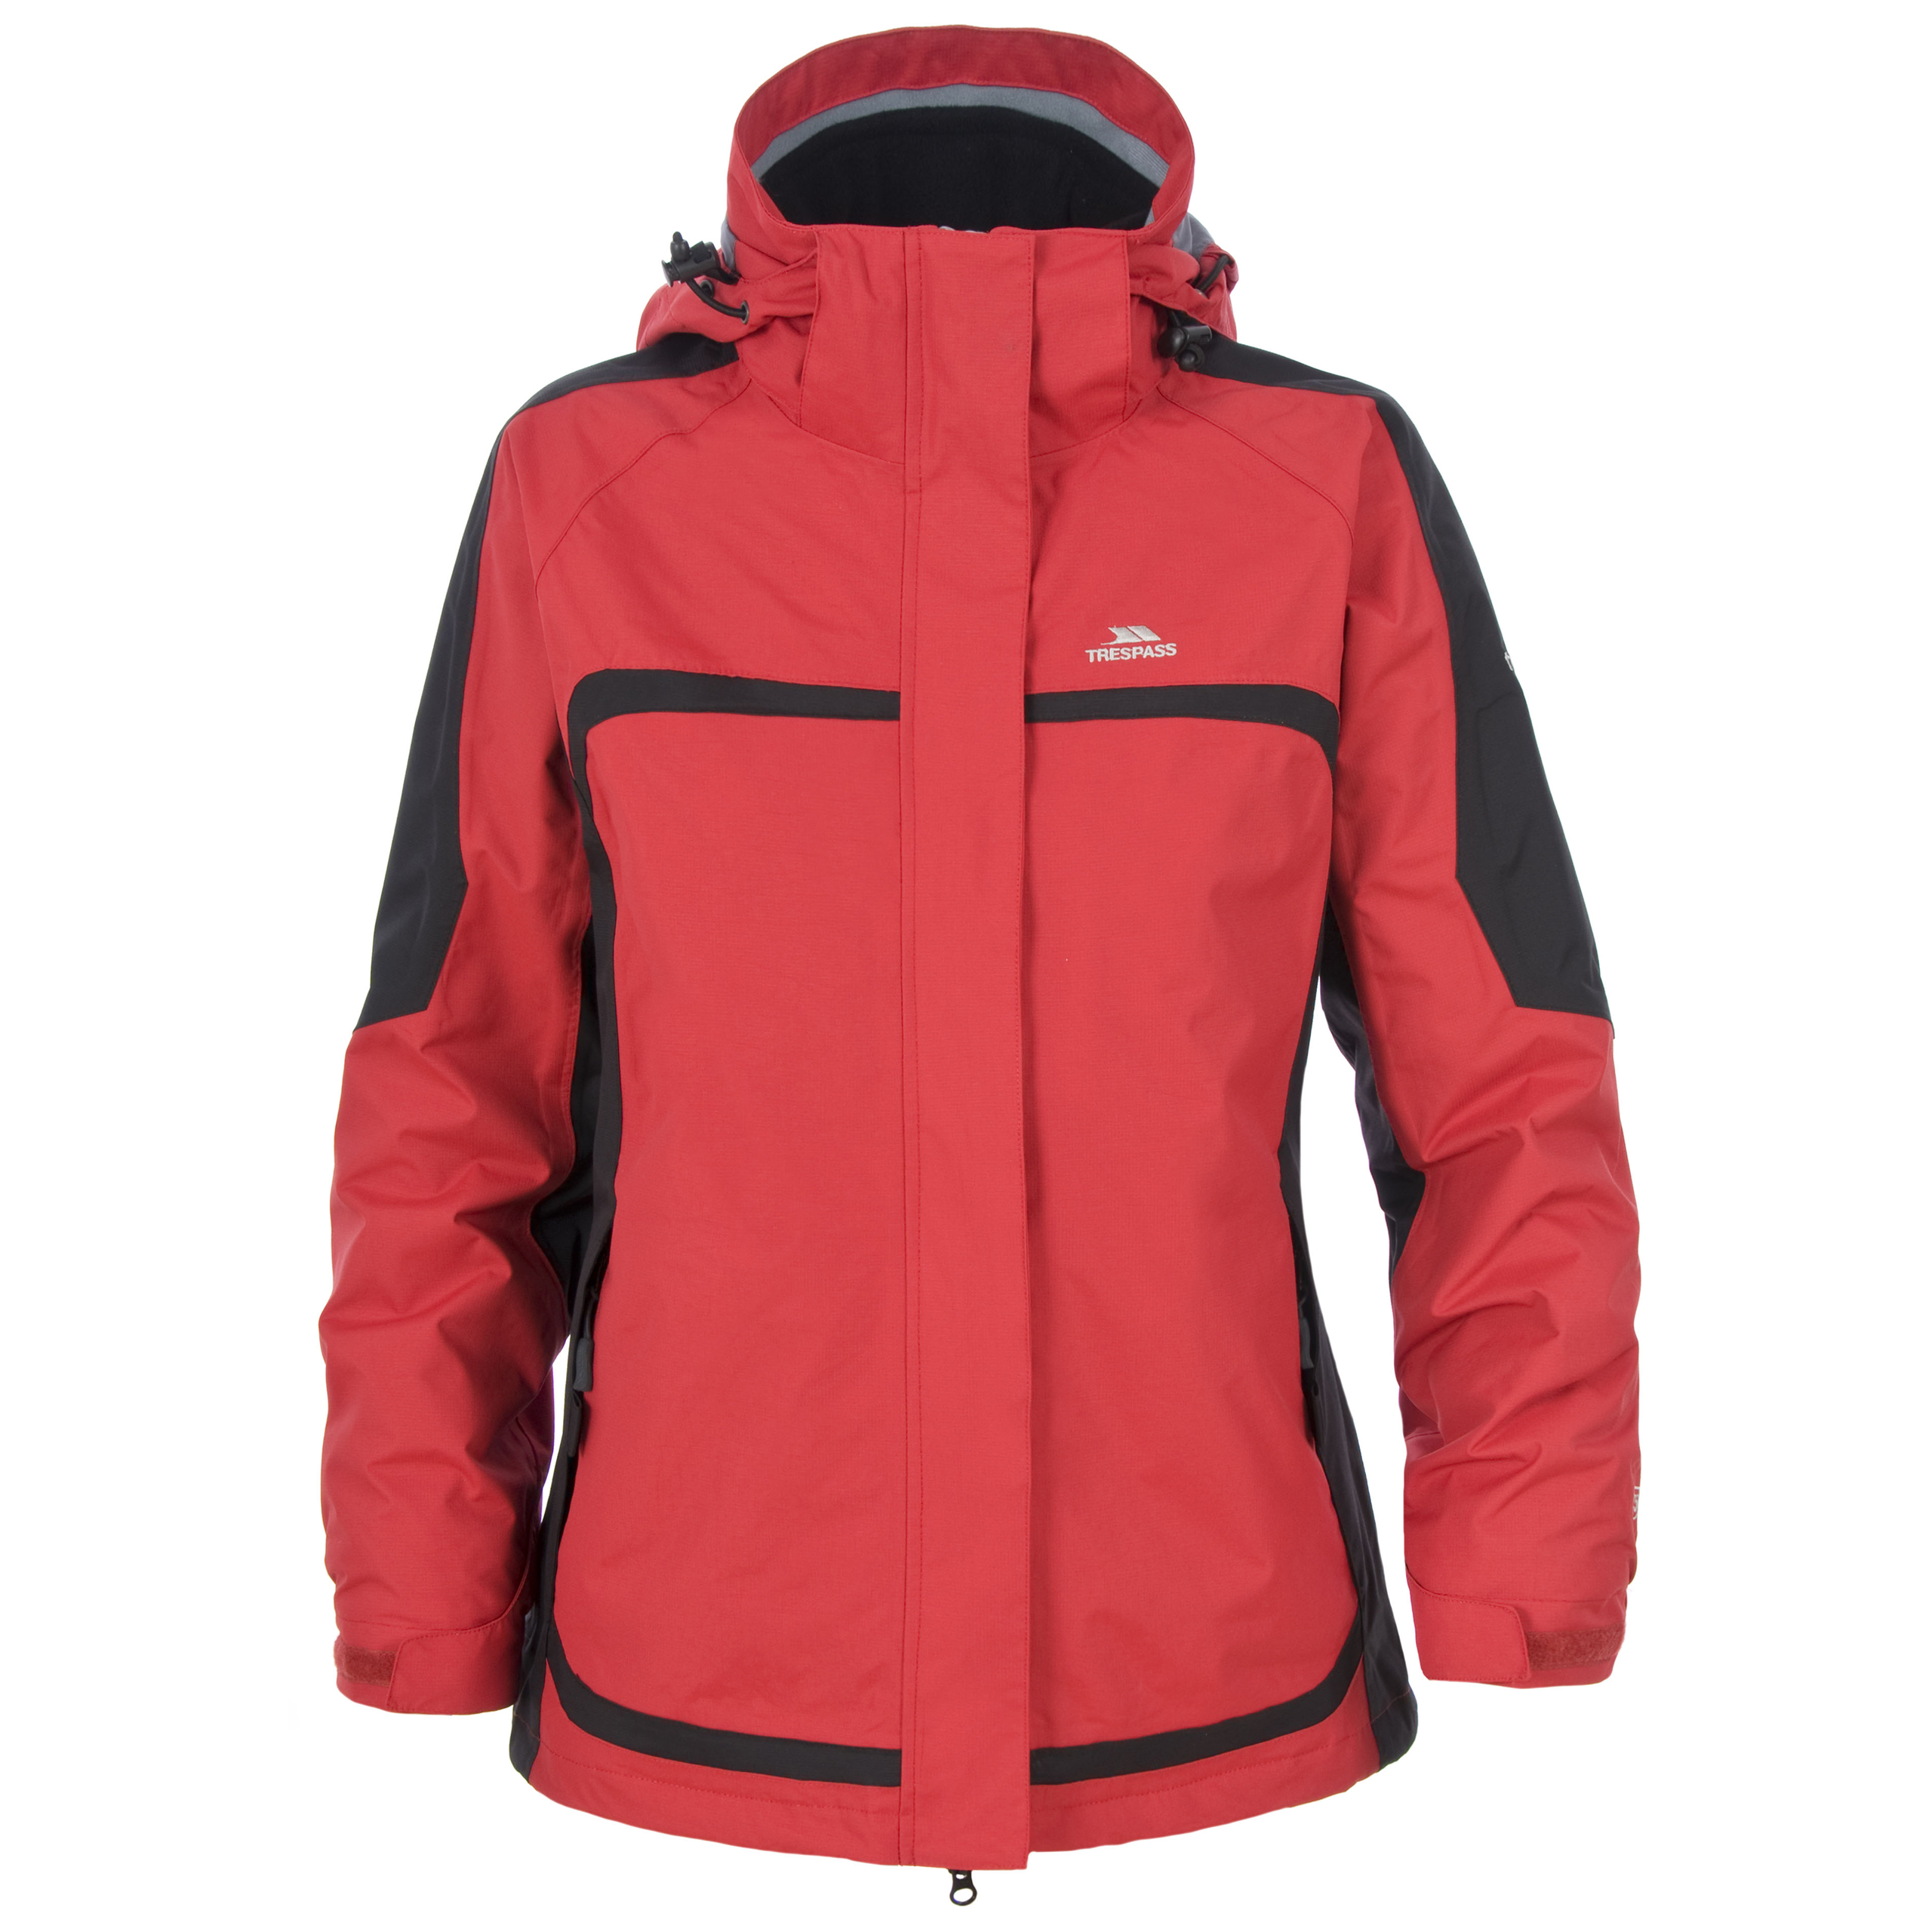 Women's 3-in-1 jackets, often referred to as multifunctional jackets, can be wonderfully adapted to the personal needs of the person wearing it as well as to the current weather conditions. Usually, this kind of jacket consists of two jackets, which can be connected to each other using buttons or zips.